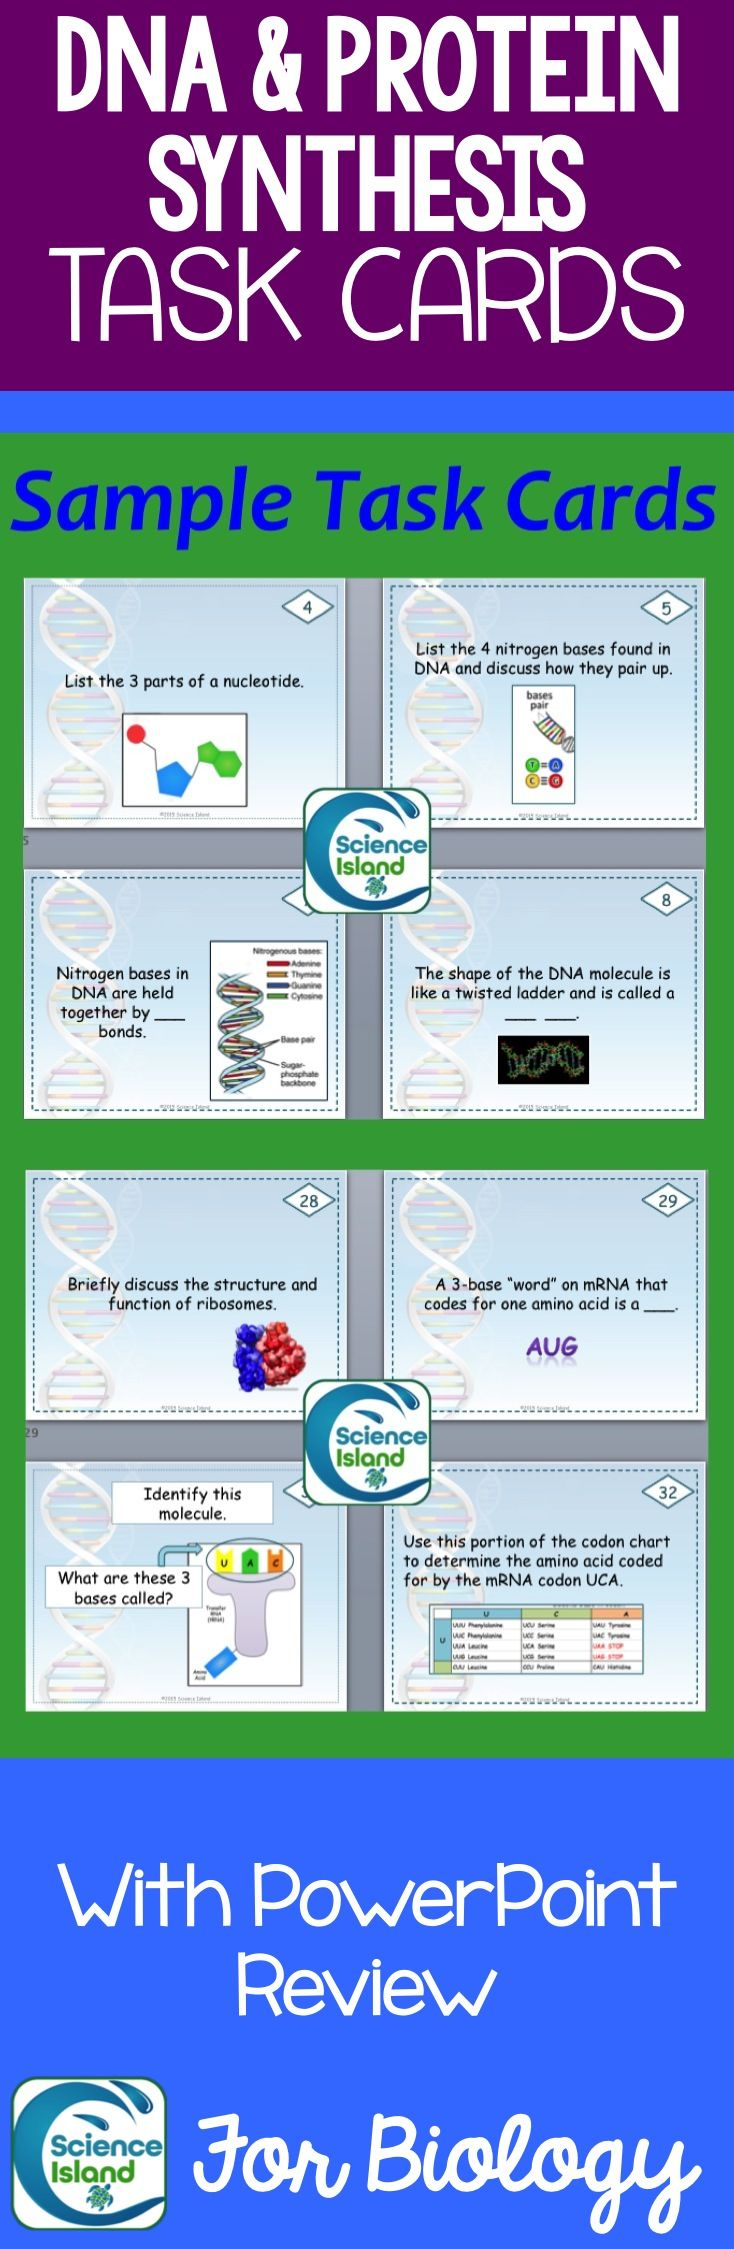 dna replication transcription and translation essay This process is done through dna replication which requires transcription and translation processes during replication, the dna unwinds, as aided by the dna polymerase, and generates two identical dna molecules.